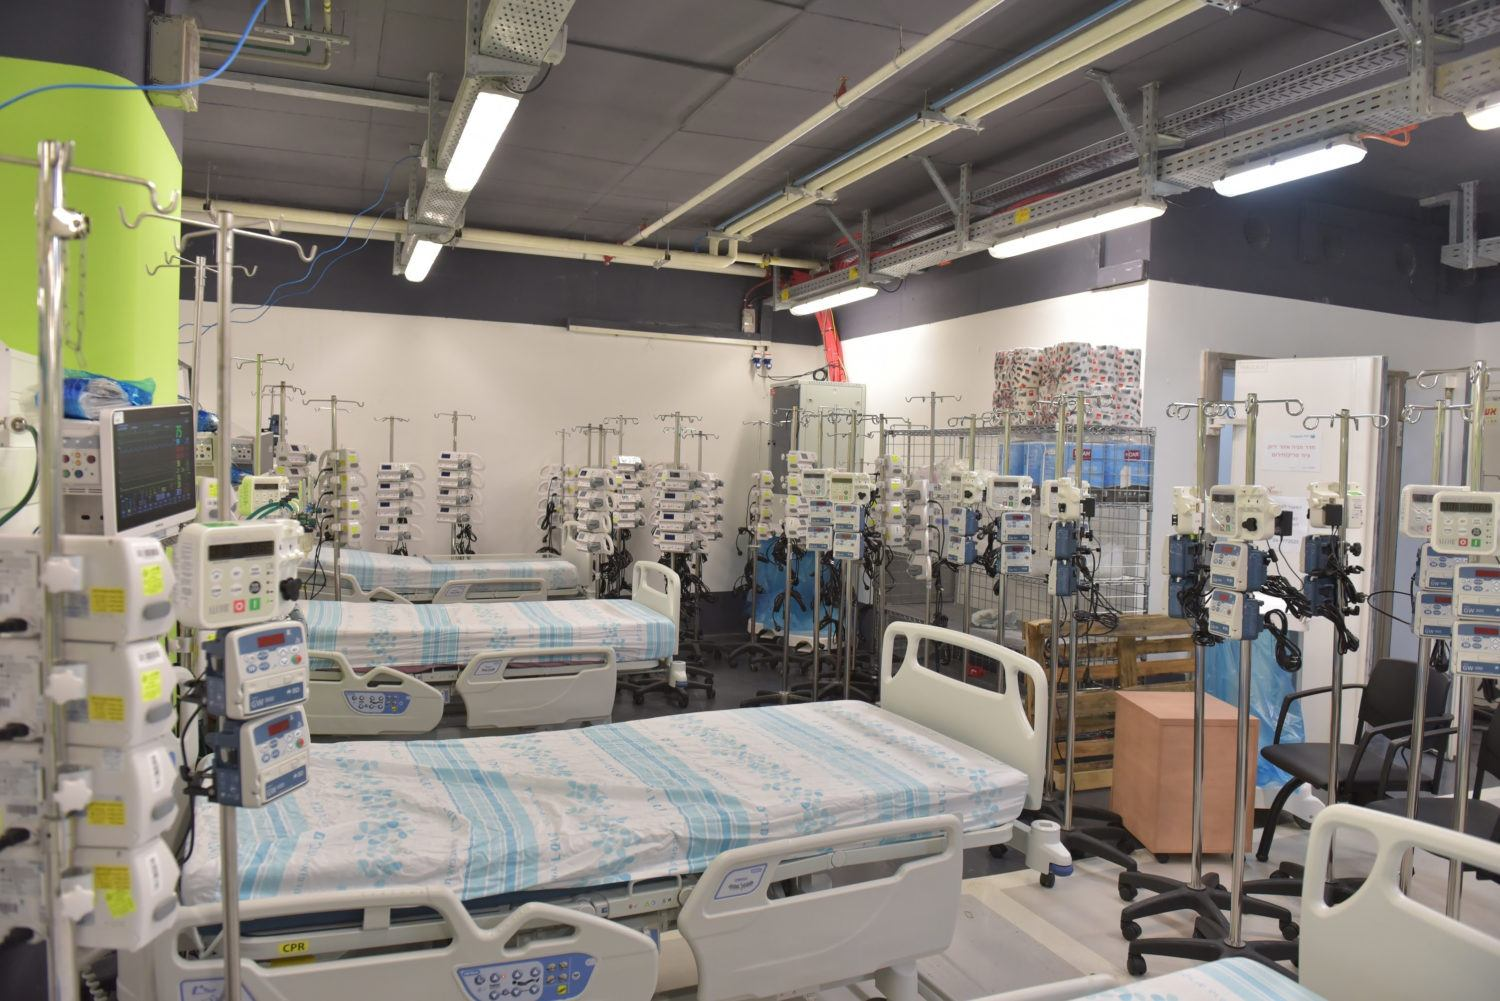 Rambam Opens Largest Underground COVID-19 Facility in Israel